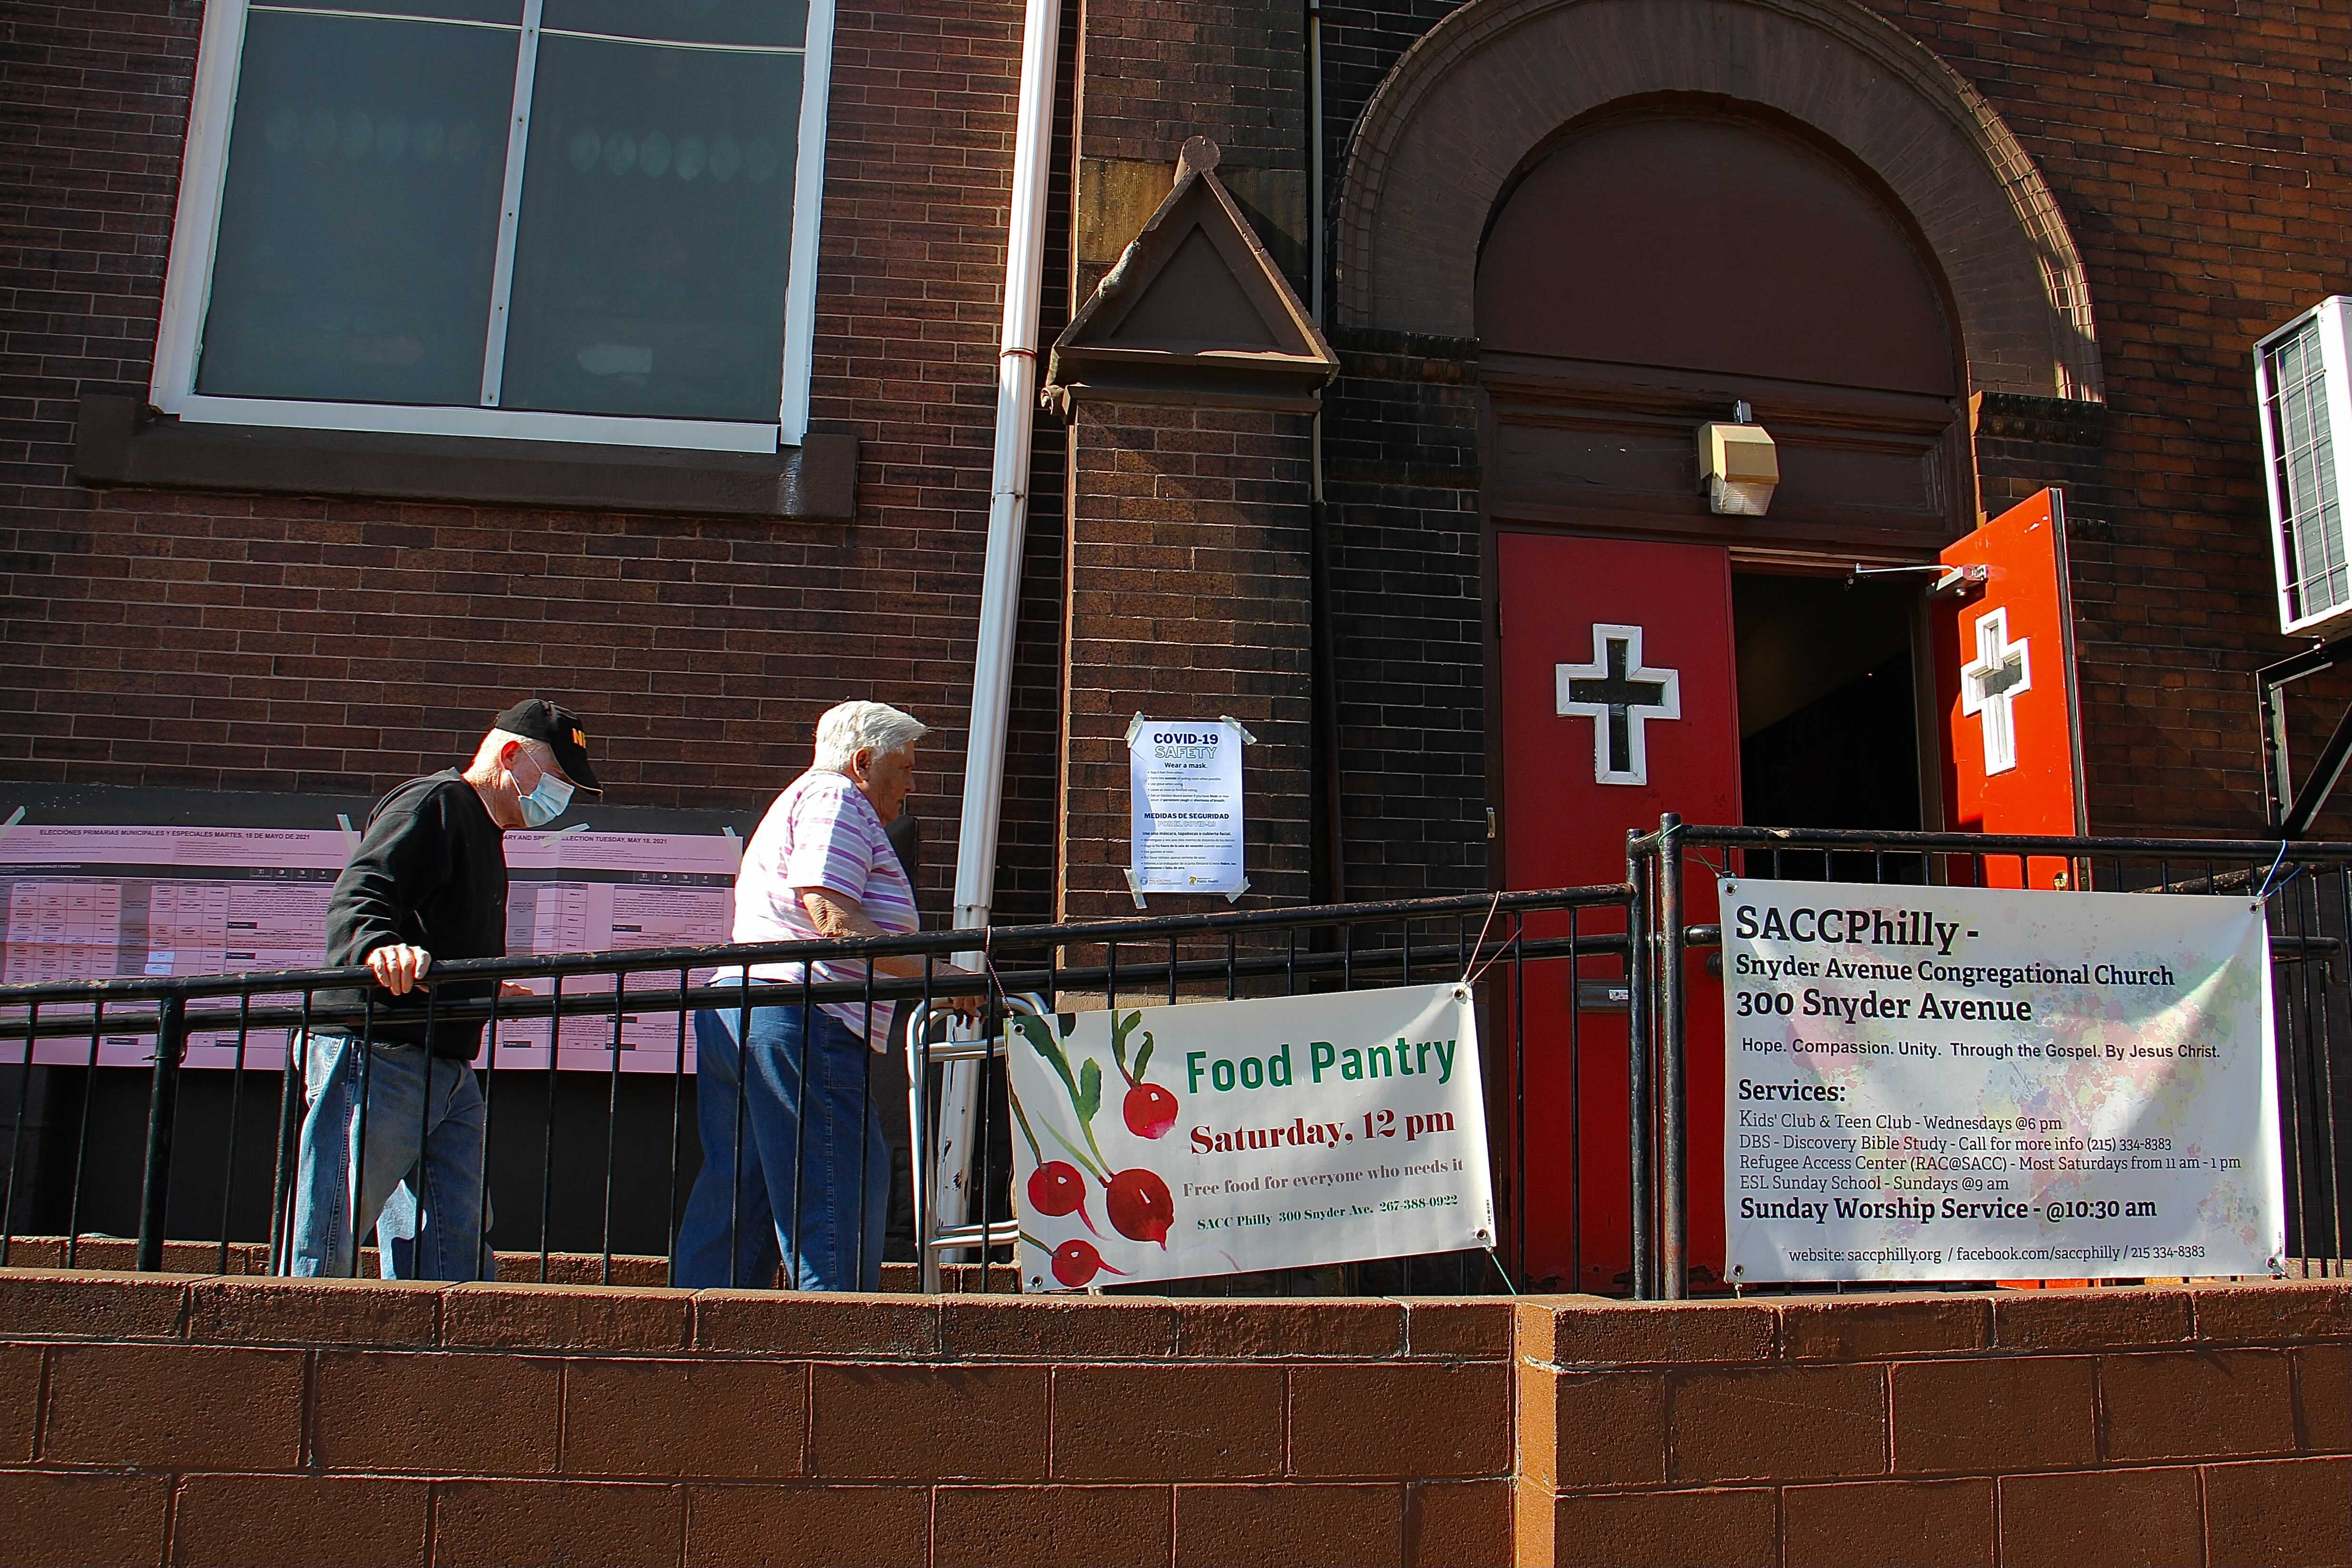 Voters arrive at Snyder Avenue Congregational Church to vote